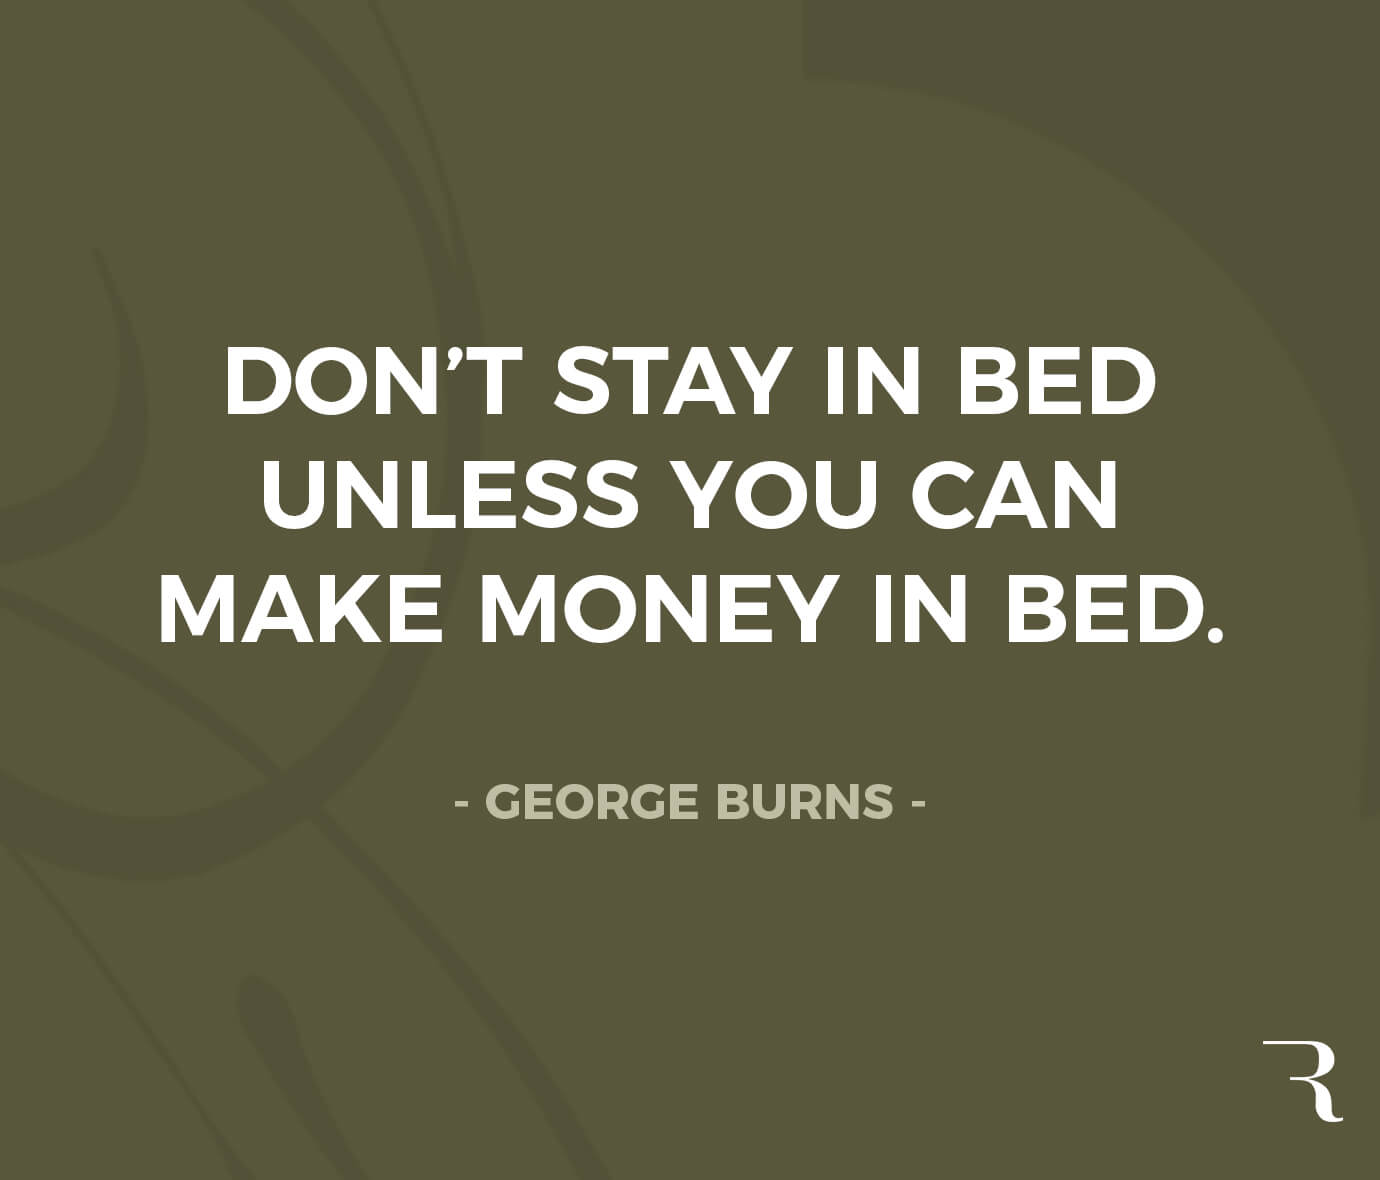 """Motivational Quotes: """"Don't stay in bed unless you can make money in bed."""" 112 Motivational Quotes to Be a Better Entrepreneur"""